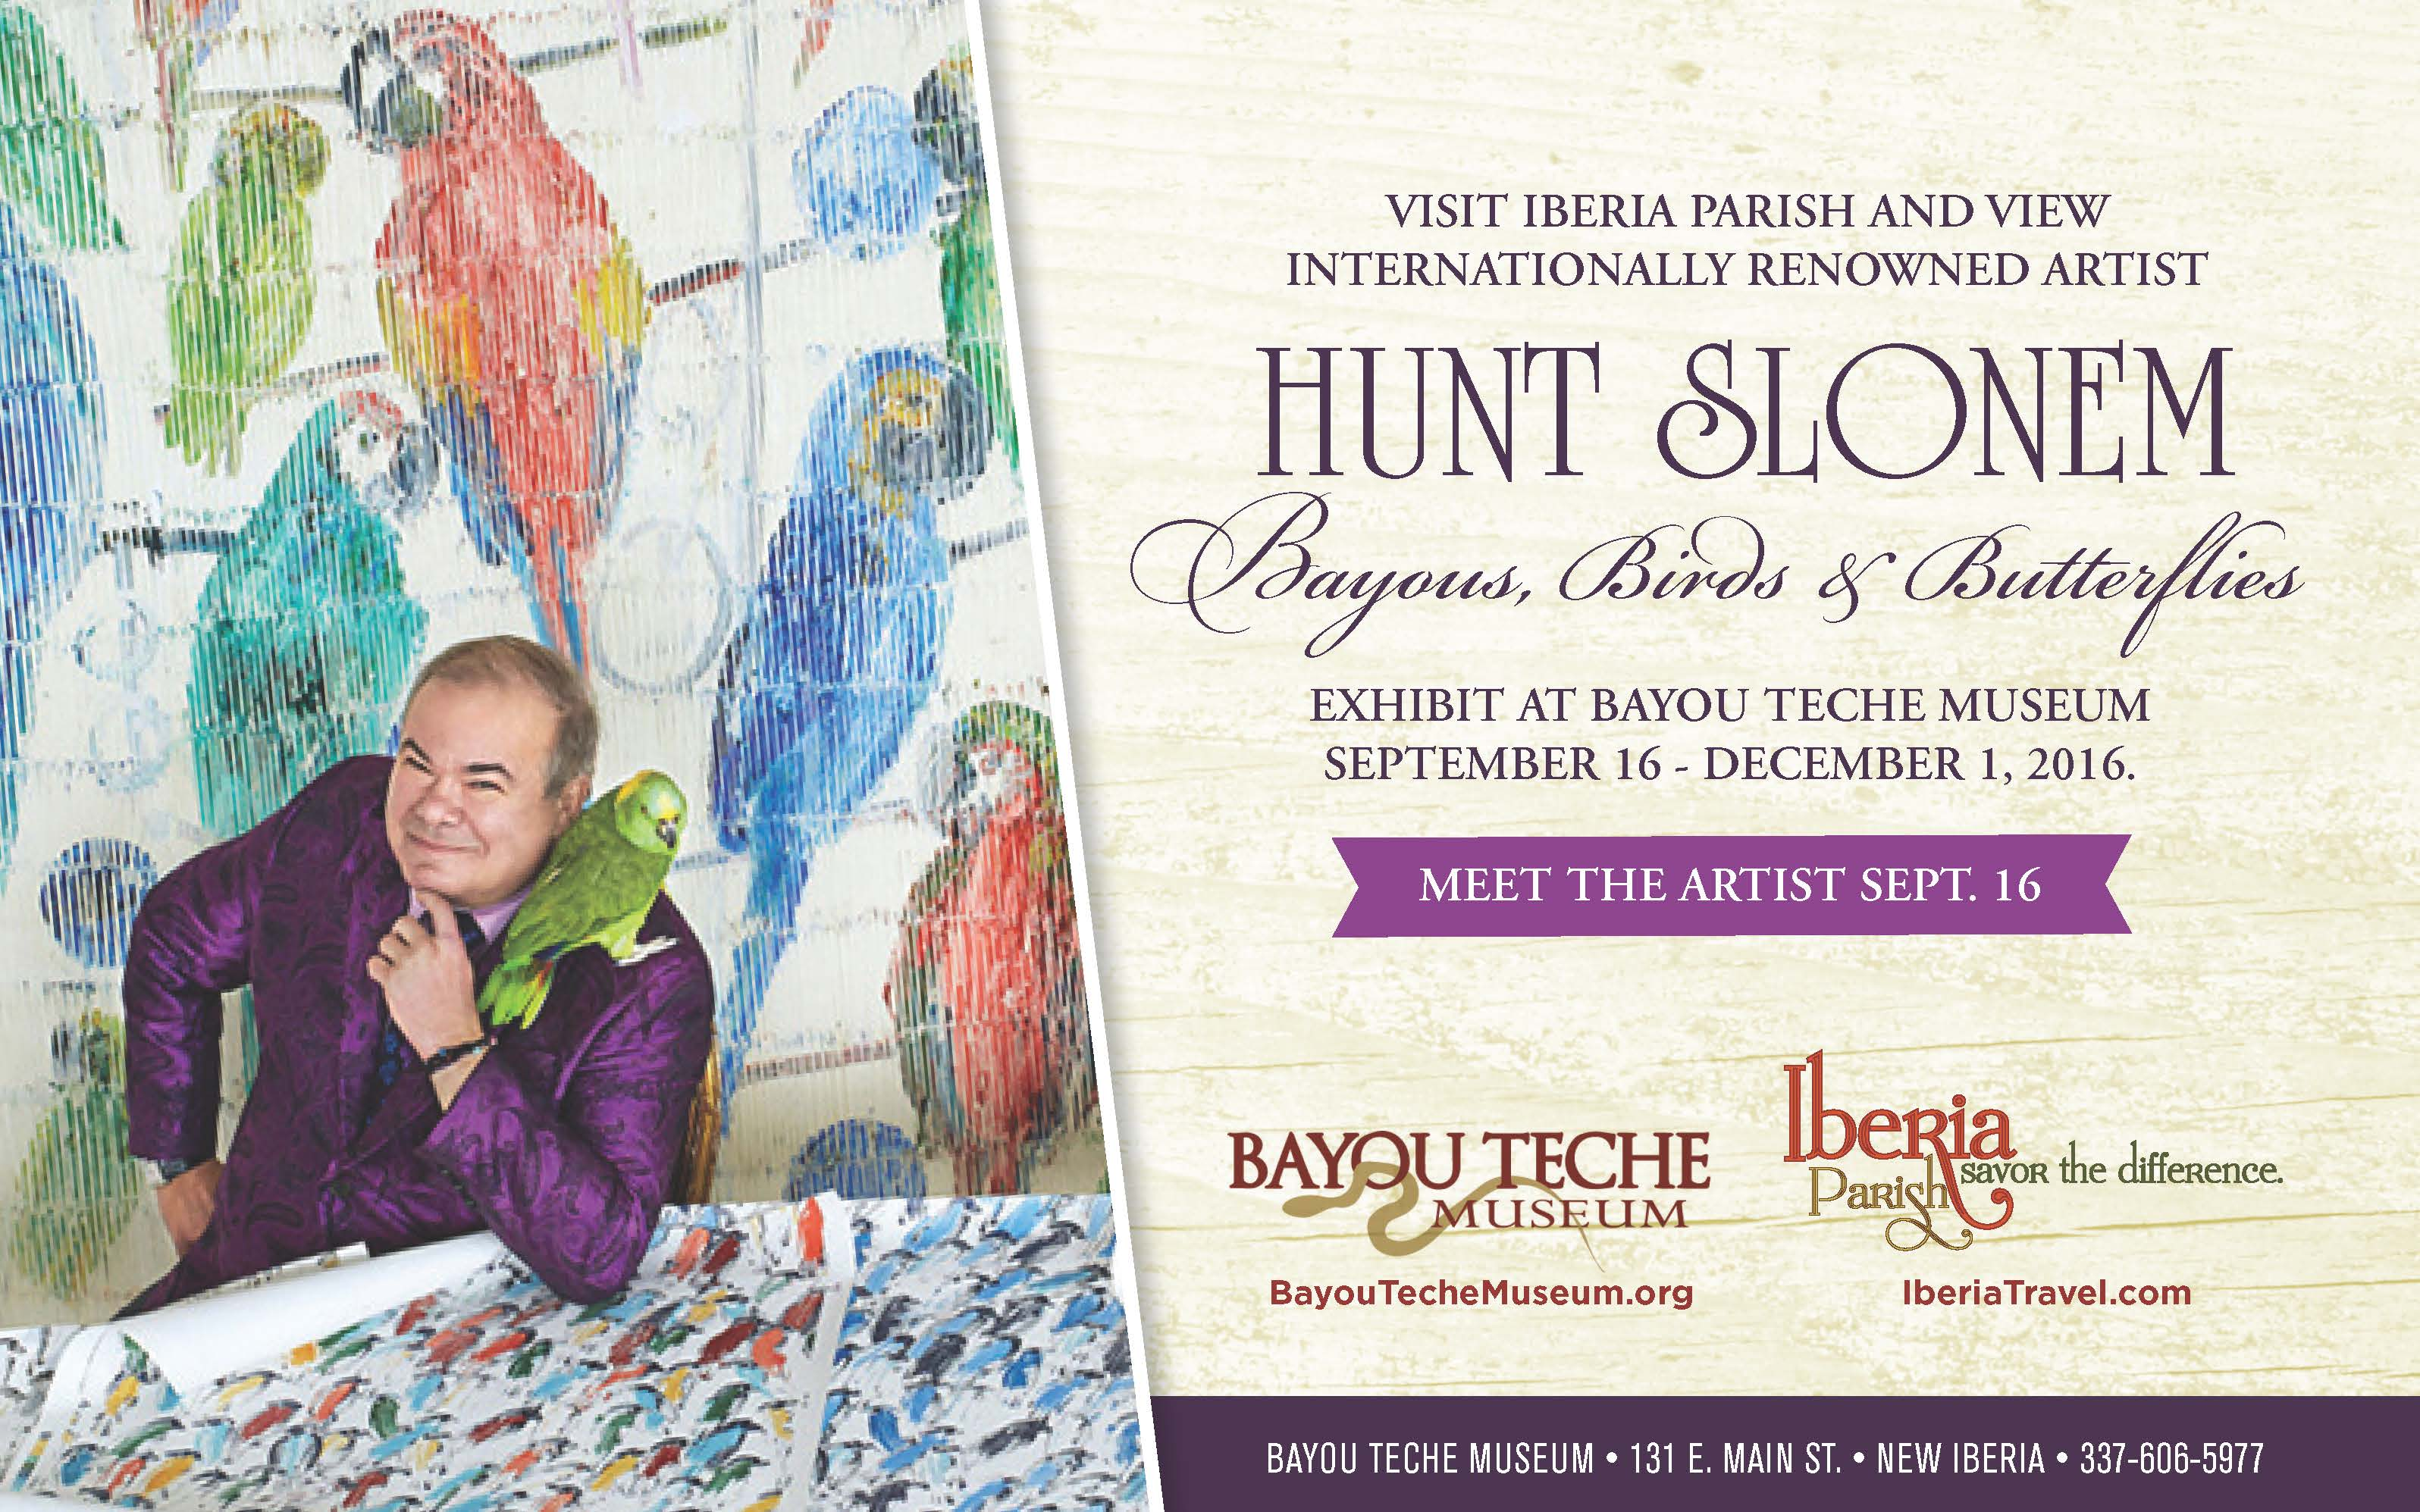 Hunt Slonem Exhibit at Bayou Teche Museum